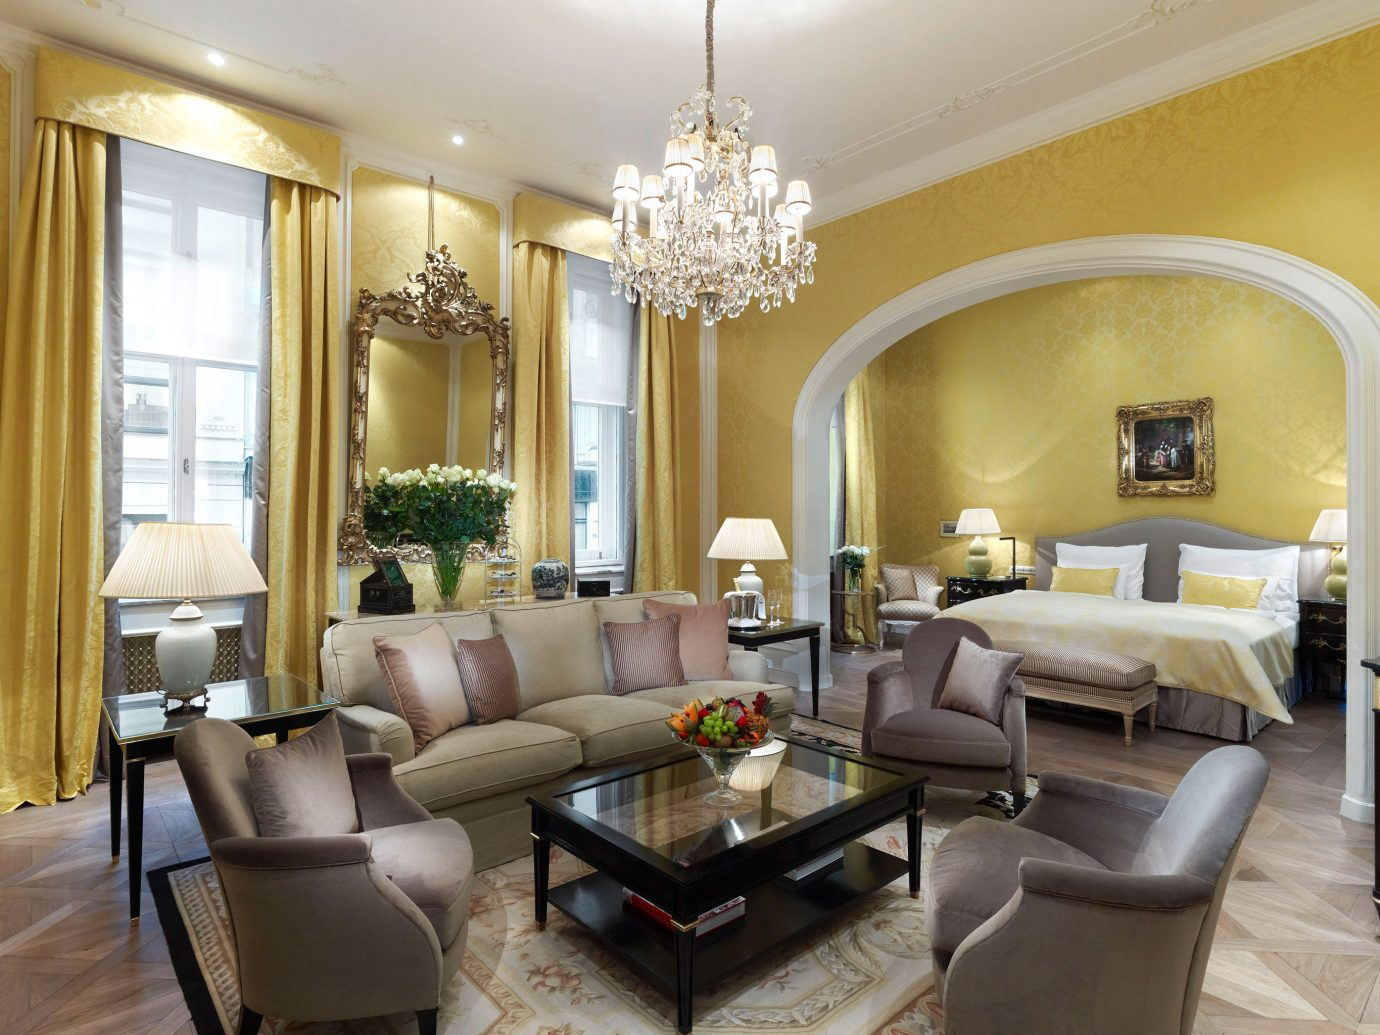 Elegant Historic Hotels Living Lounge Luxury indoor floor room sofa wall window living room property ceiling furniture estate home real estate interior design condominium Suite mansion dining room Villa area leather decorated